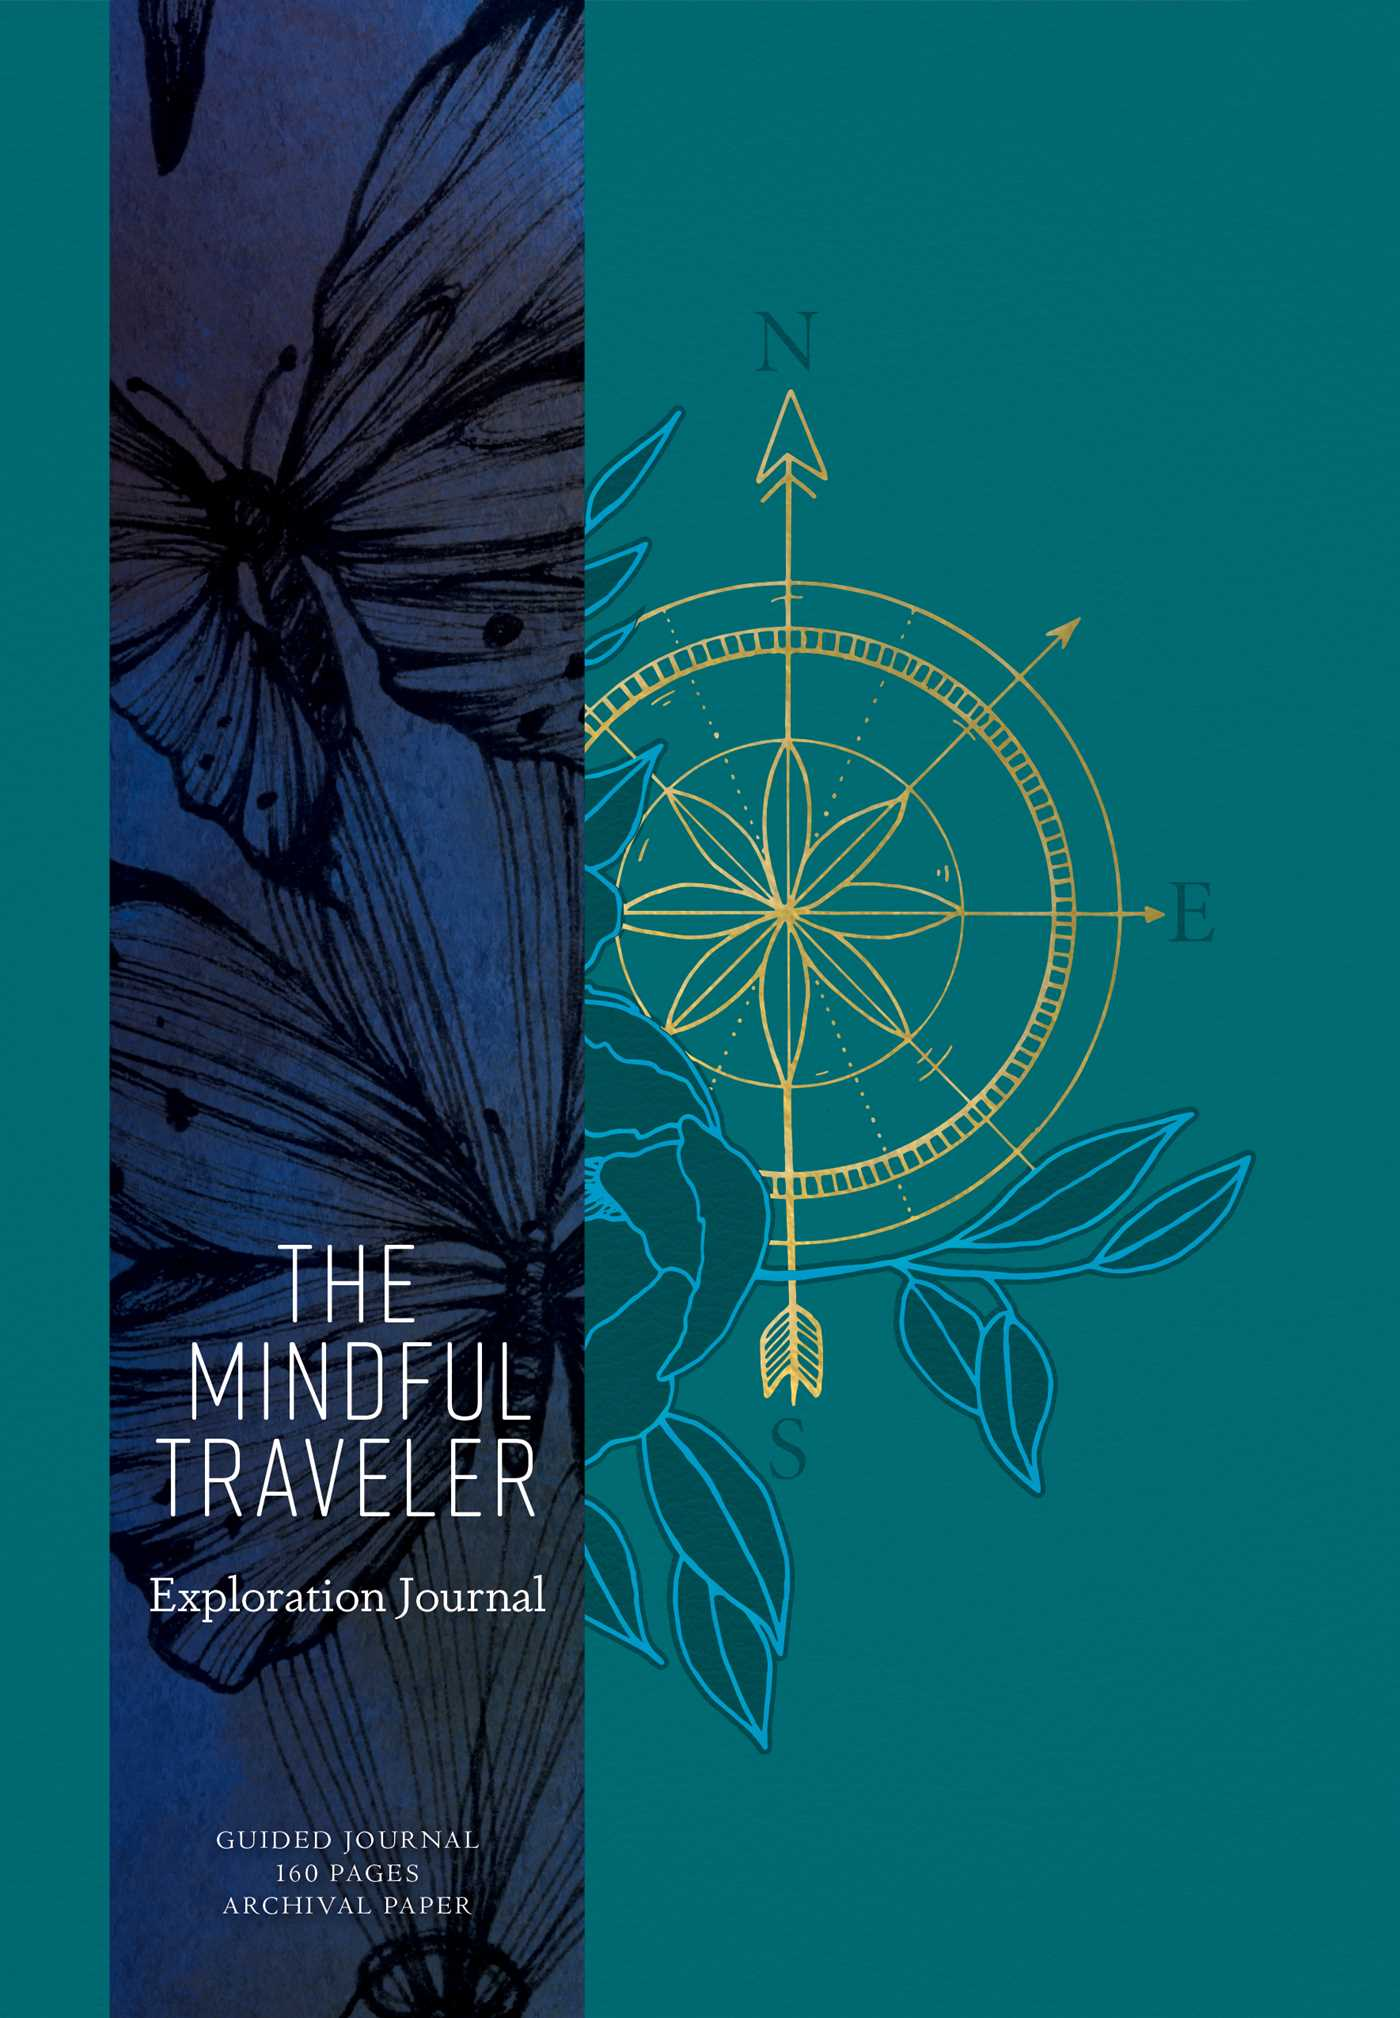 The mindful traveler 9781683834090 hr